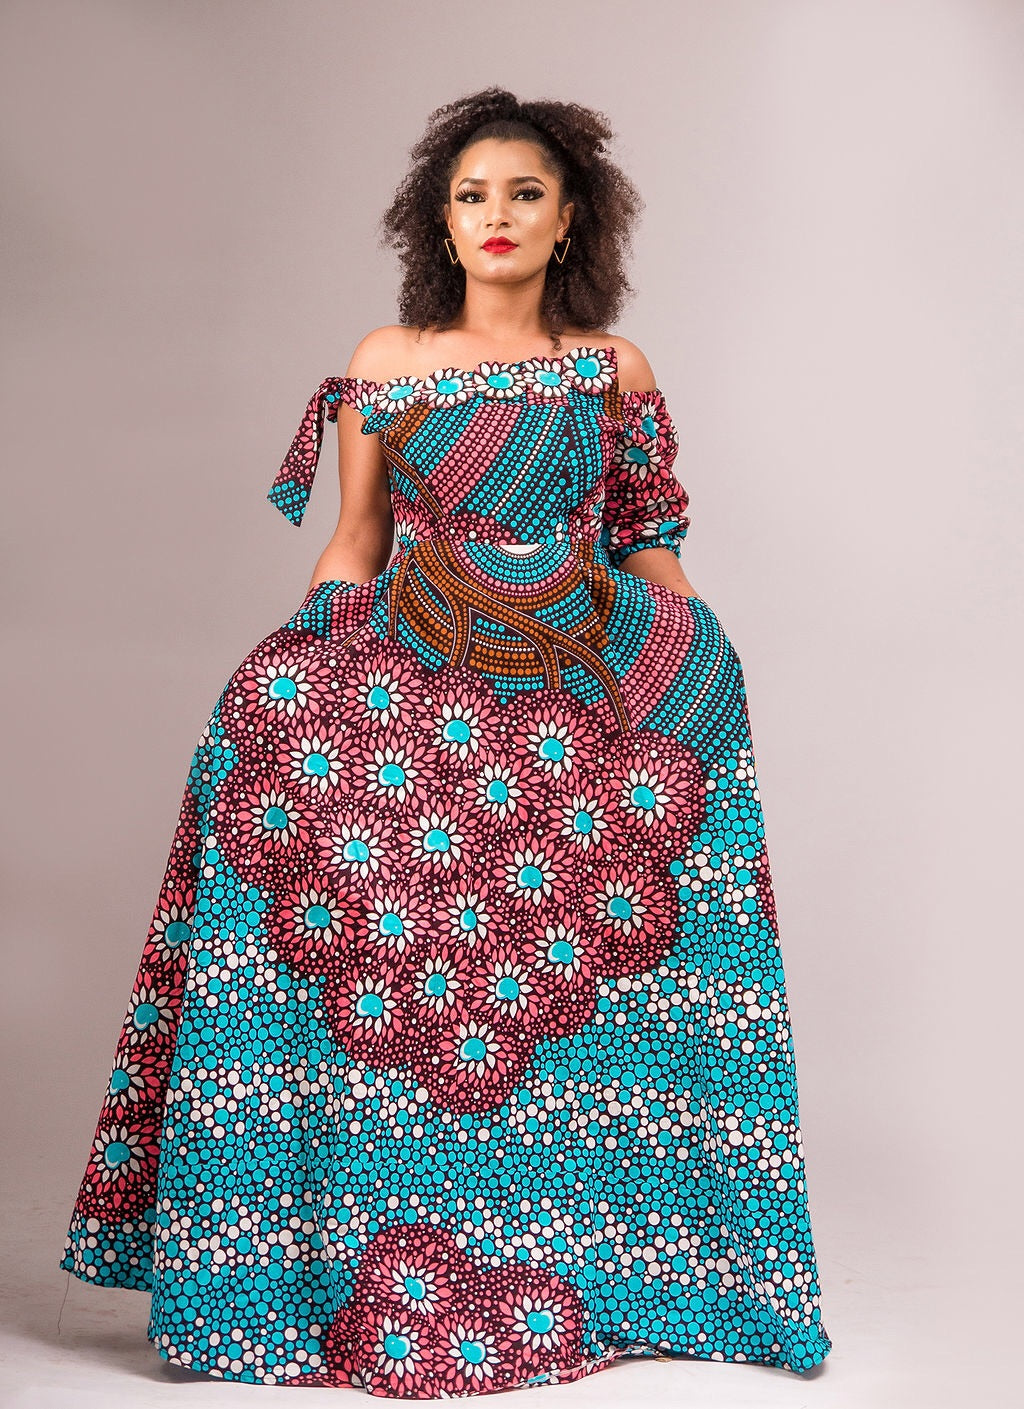 NEW IN Ashanti African print Ankara maxi dress - Afrothrone